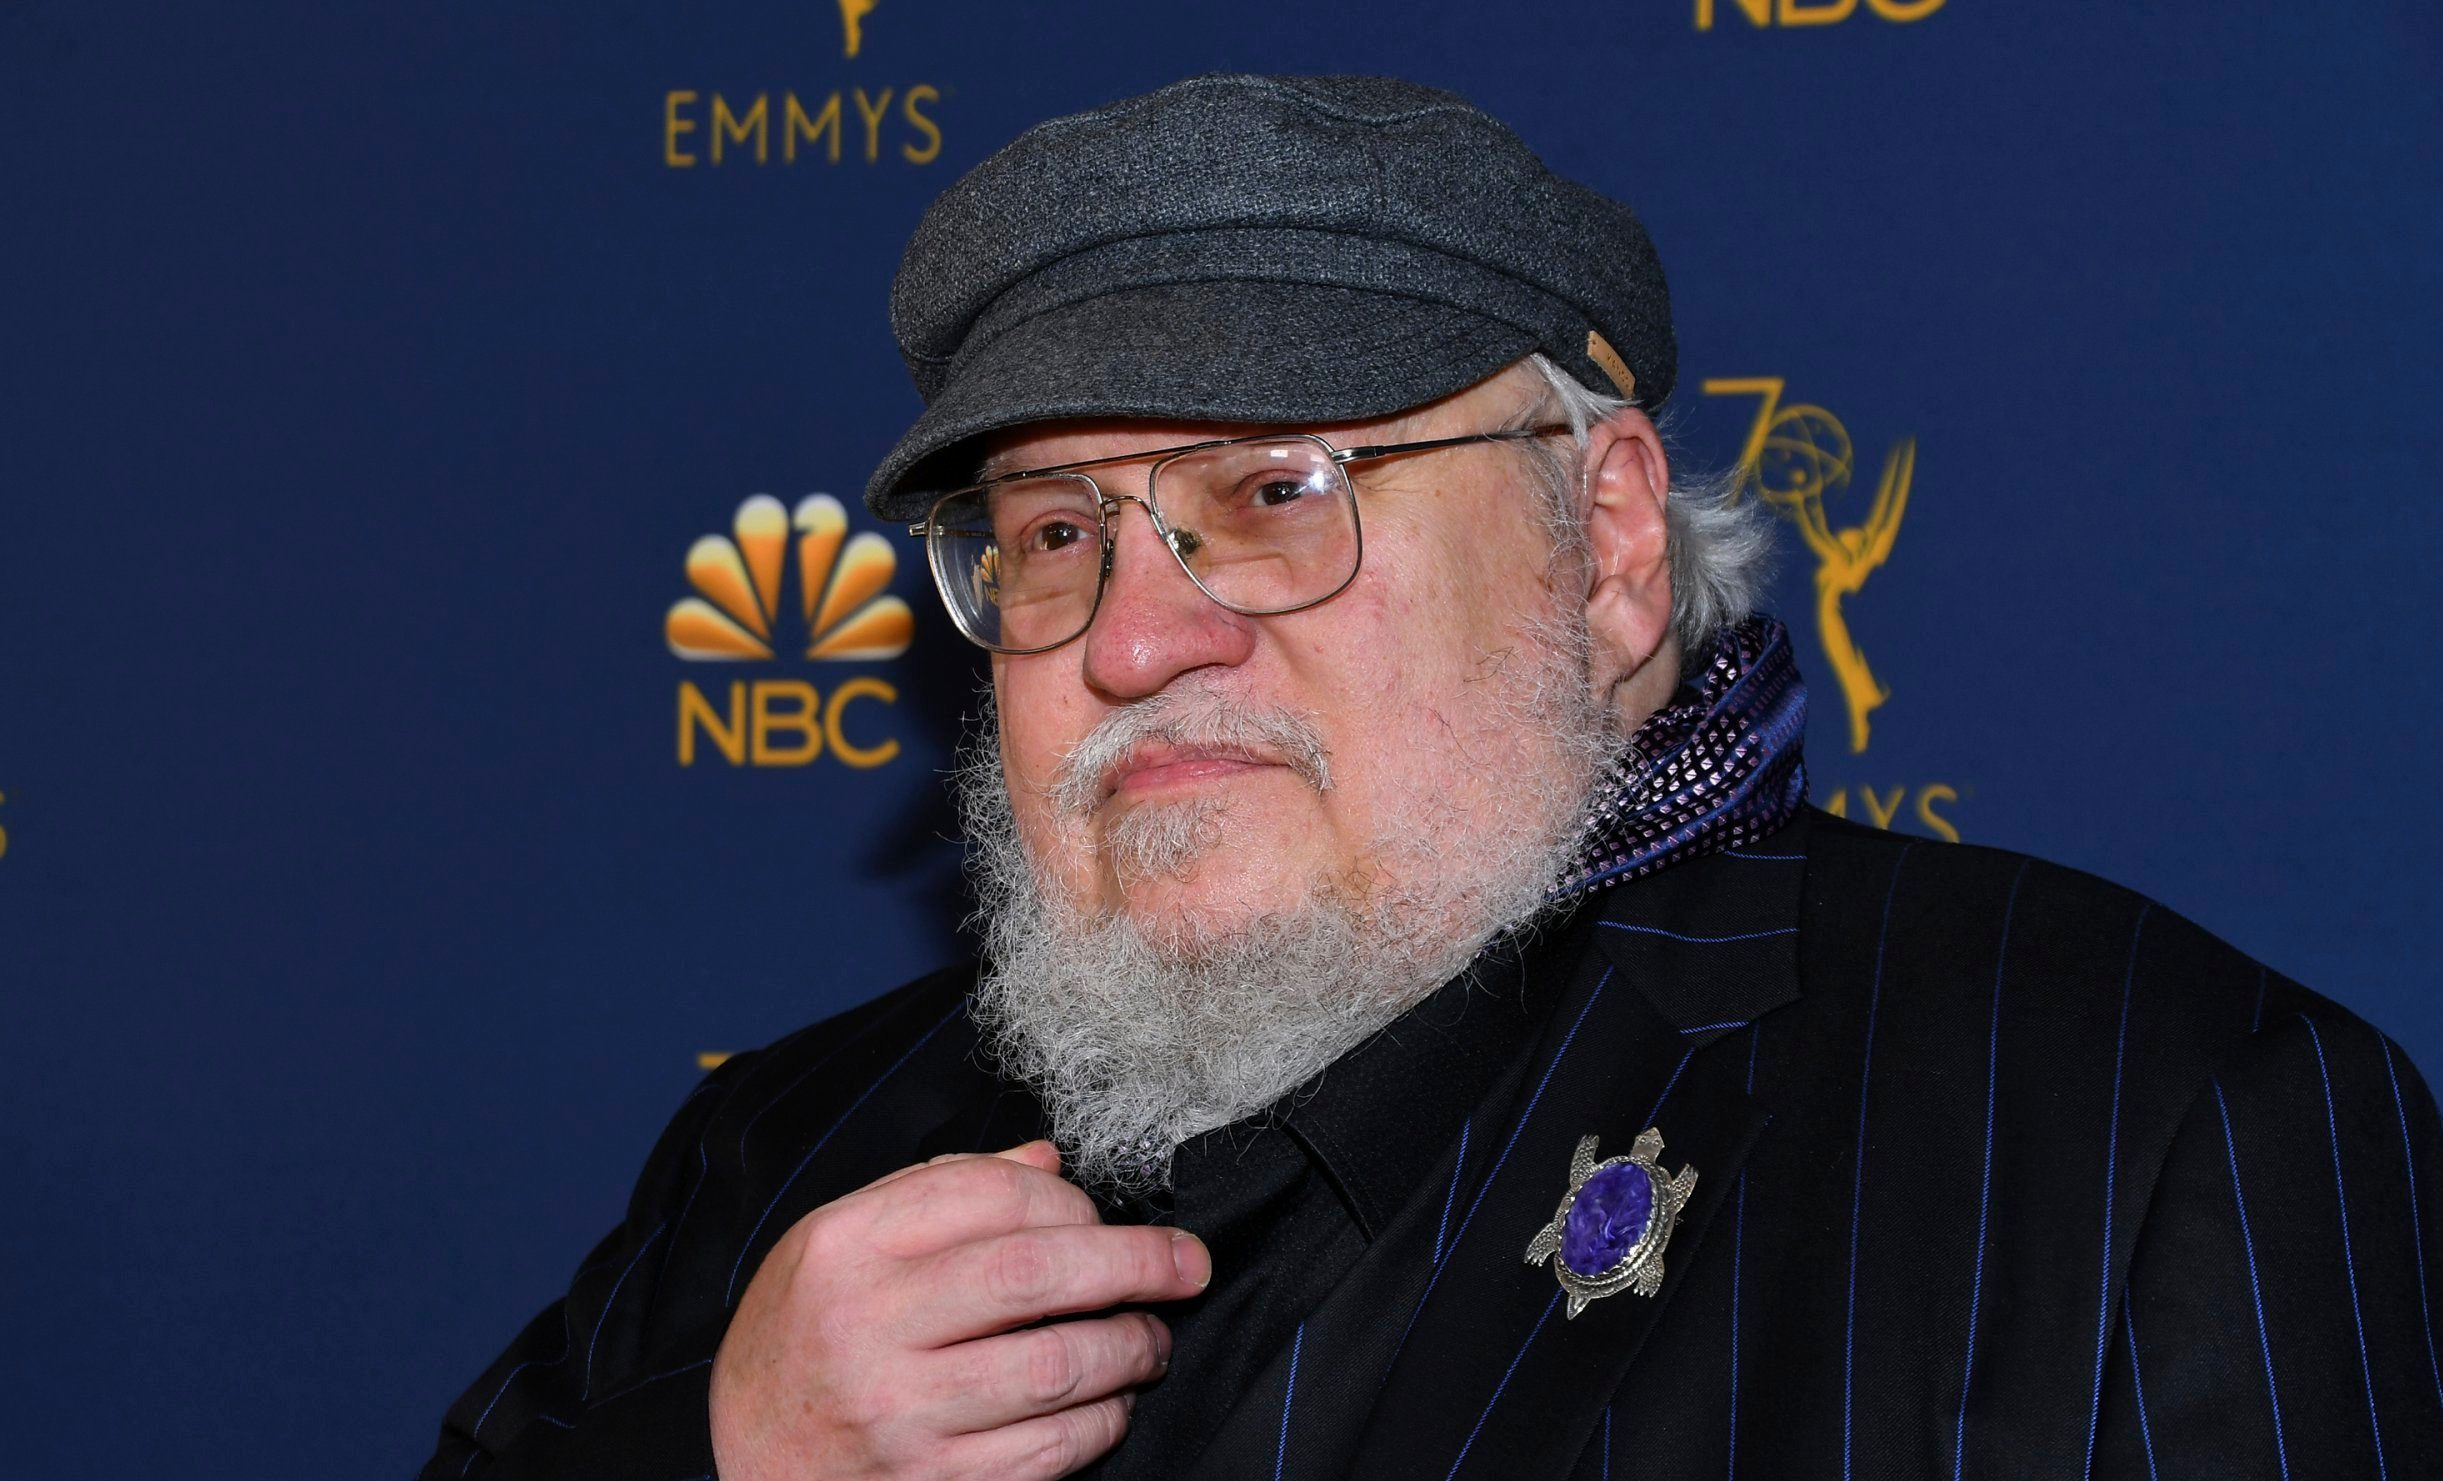 GRRM is Upset about The Winds of Winter Delay